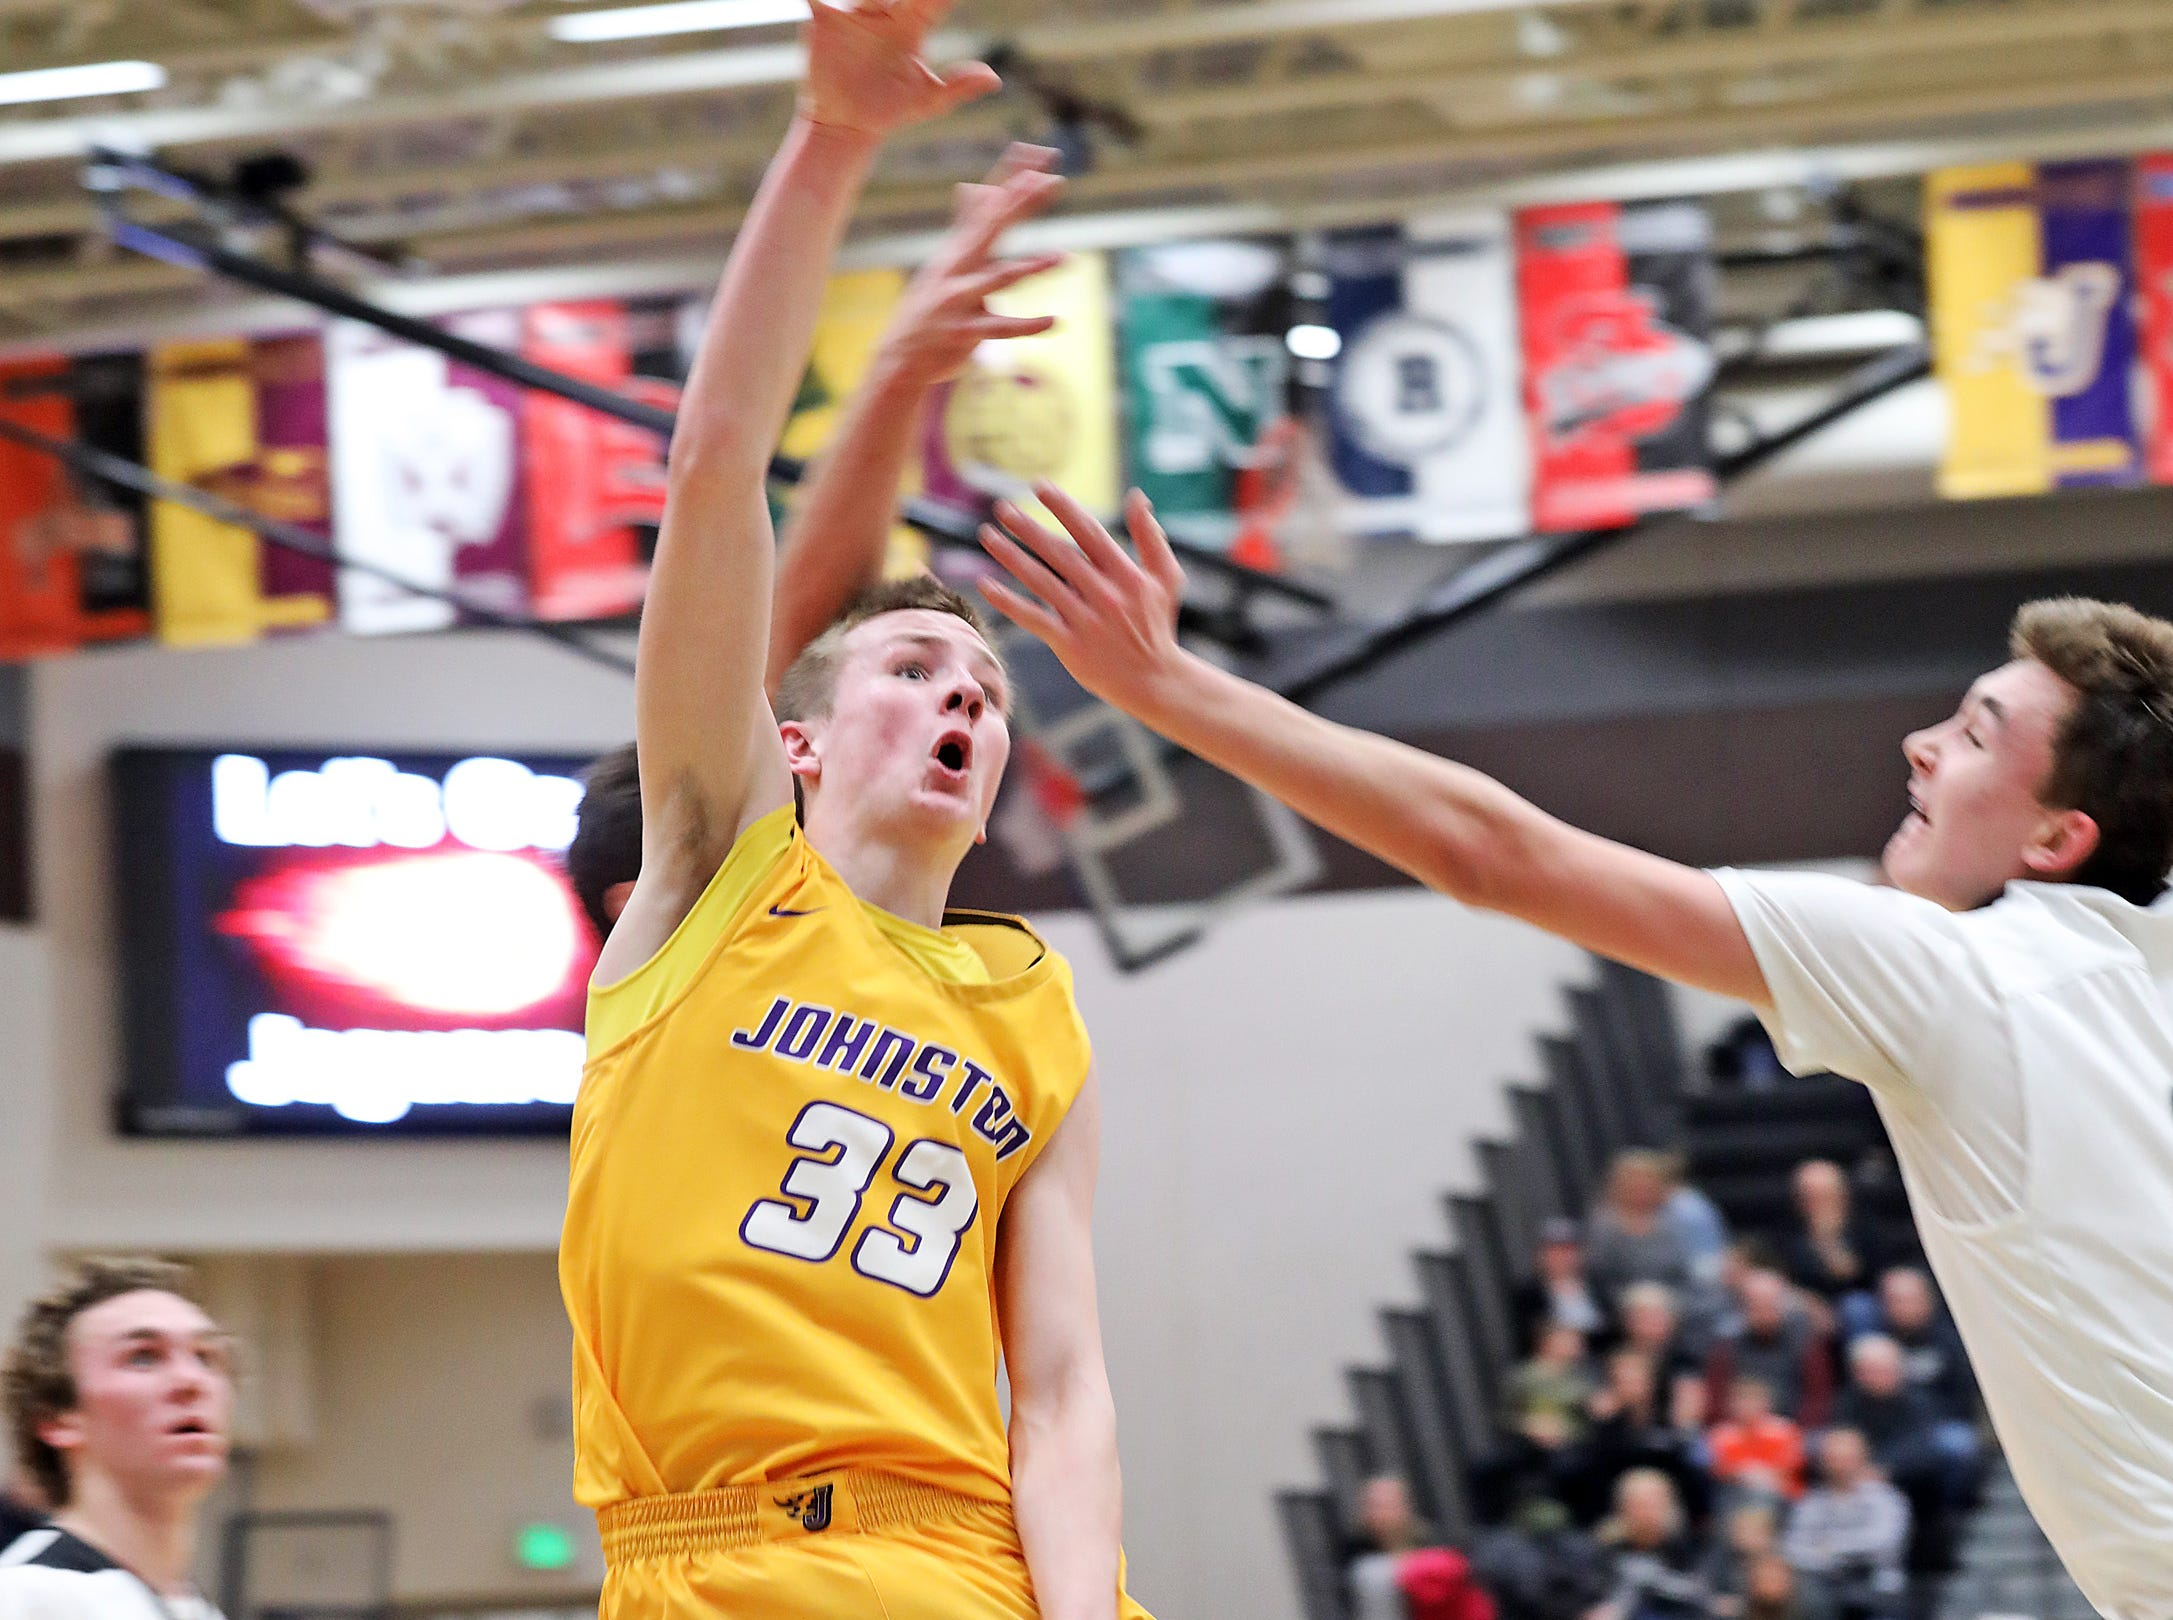 Johnston junior Lute Woodley shoots for two as the Johnston Dragons compete against the Ankeny Centennial Jaguars in high school boys basketball on Friday, Jan. 4, 2019 at Ankeny Centennial High School.  Centennial won 53 to 46.